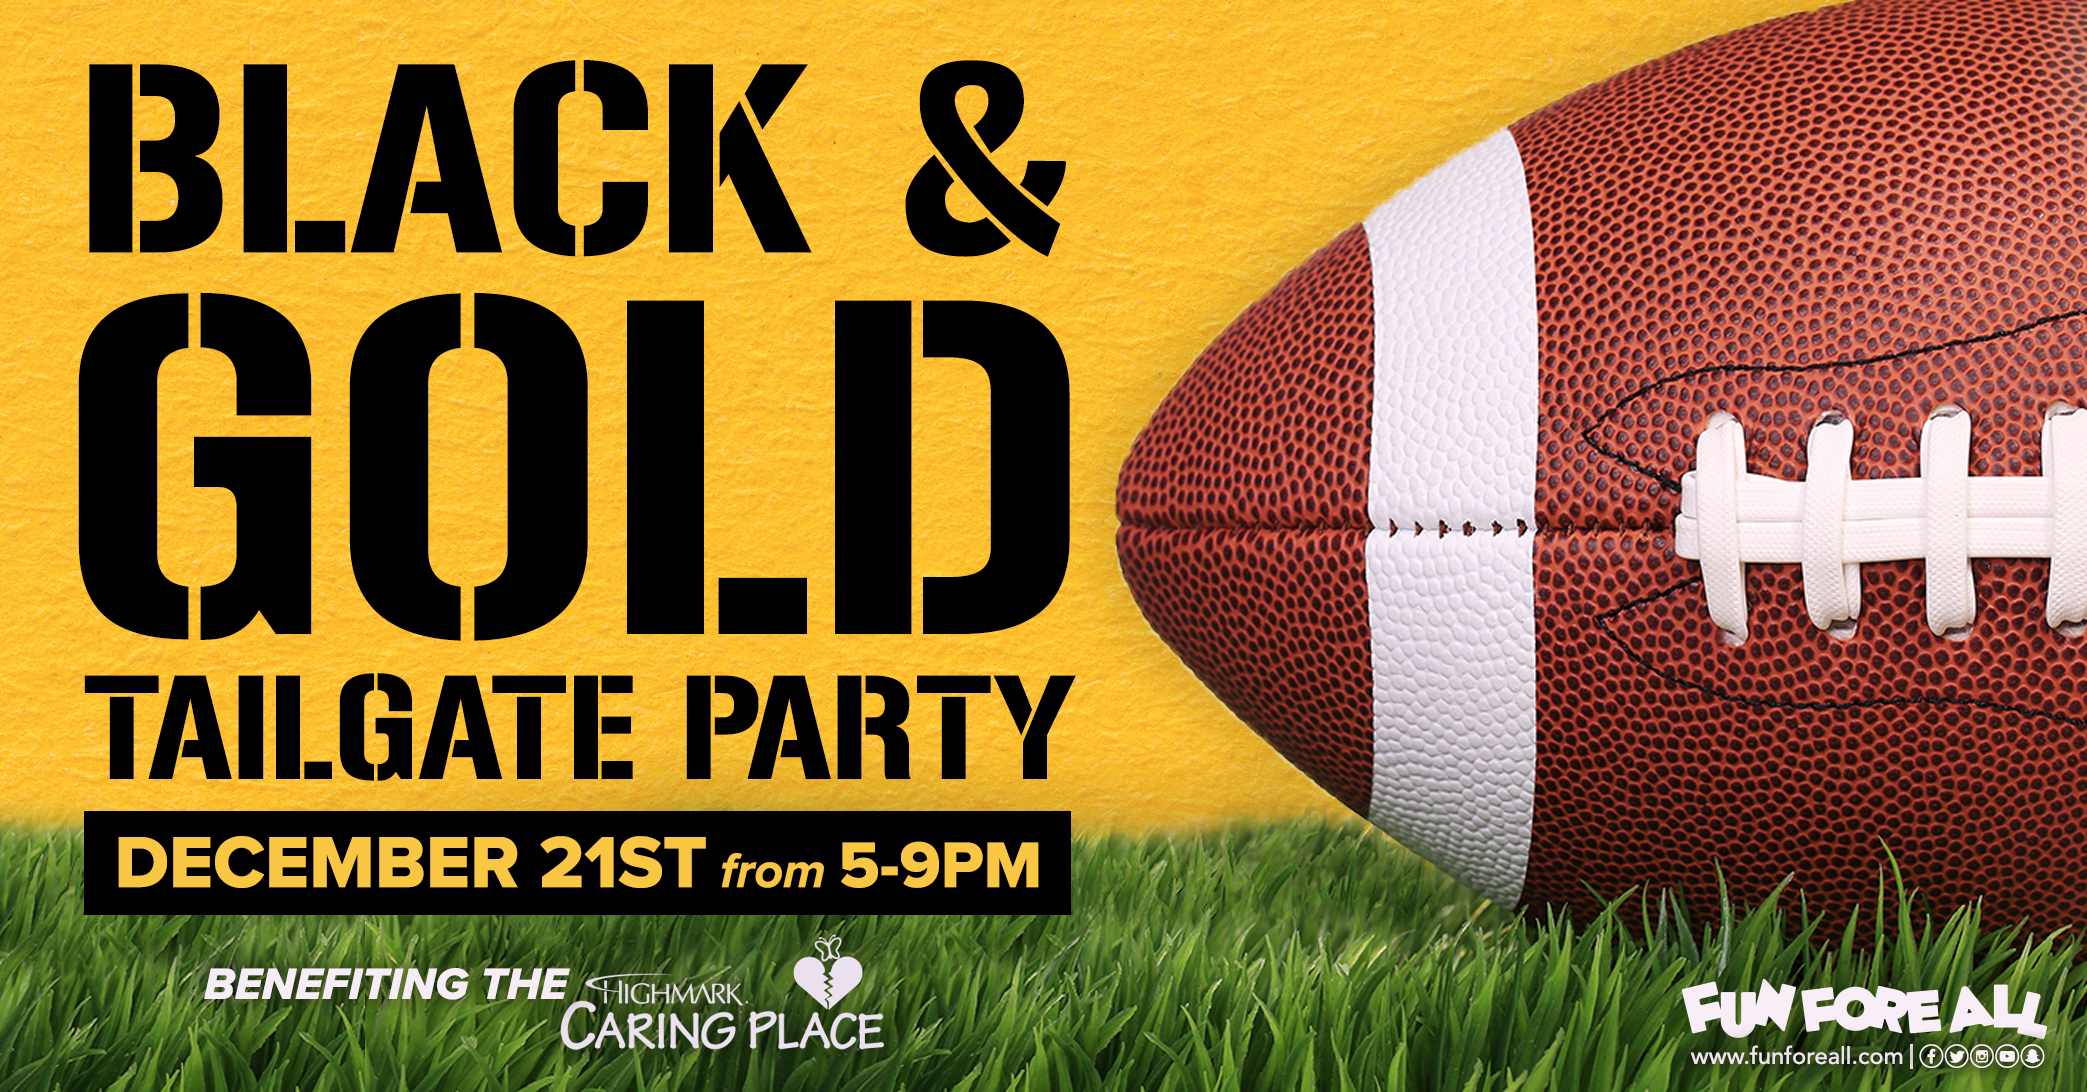 BLACK & GOLD TAILGATE PARTY INVITE BANNER (2018)